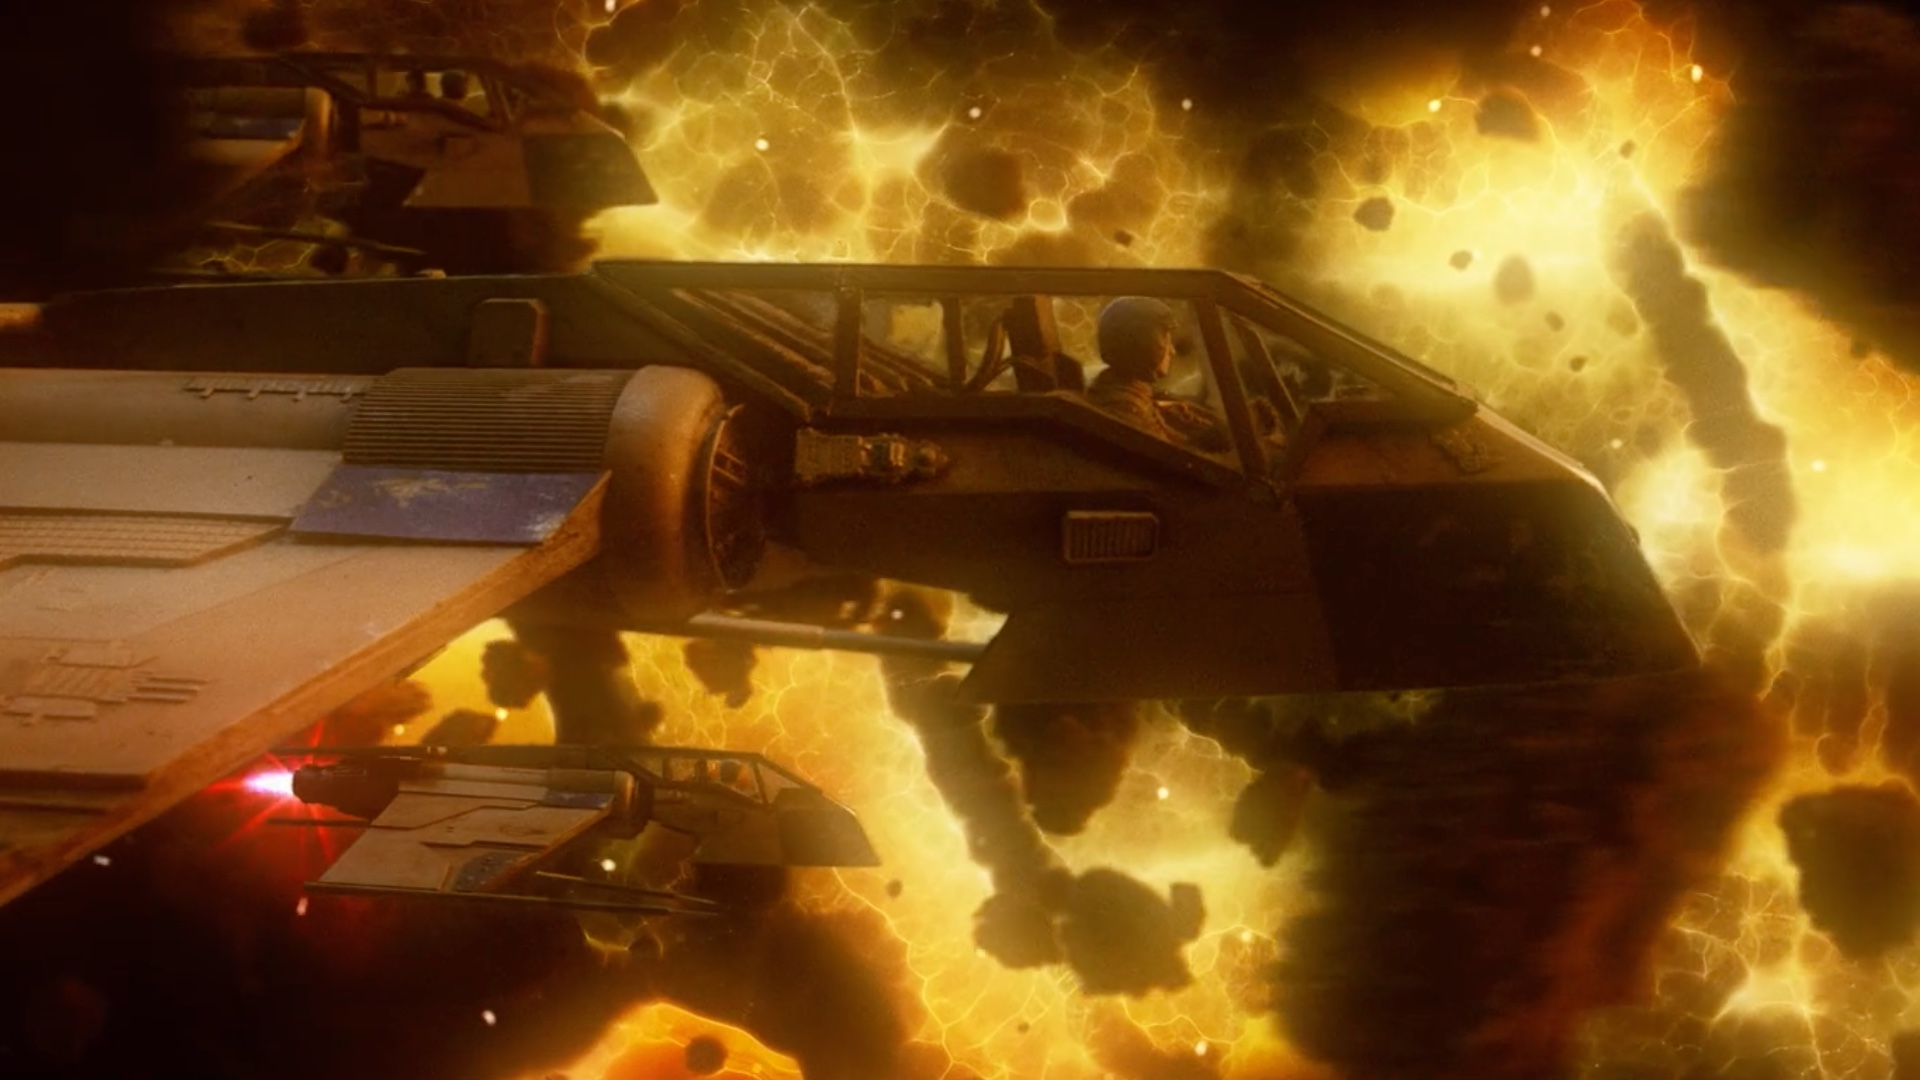 watch-a-fun-sci-fi-short-film-called-alpha-squadron-that-was-created-with-practical-effects-social.jpg